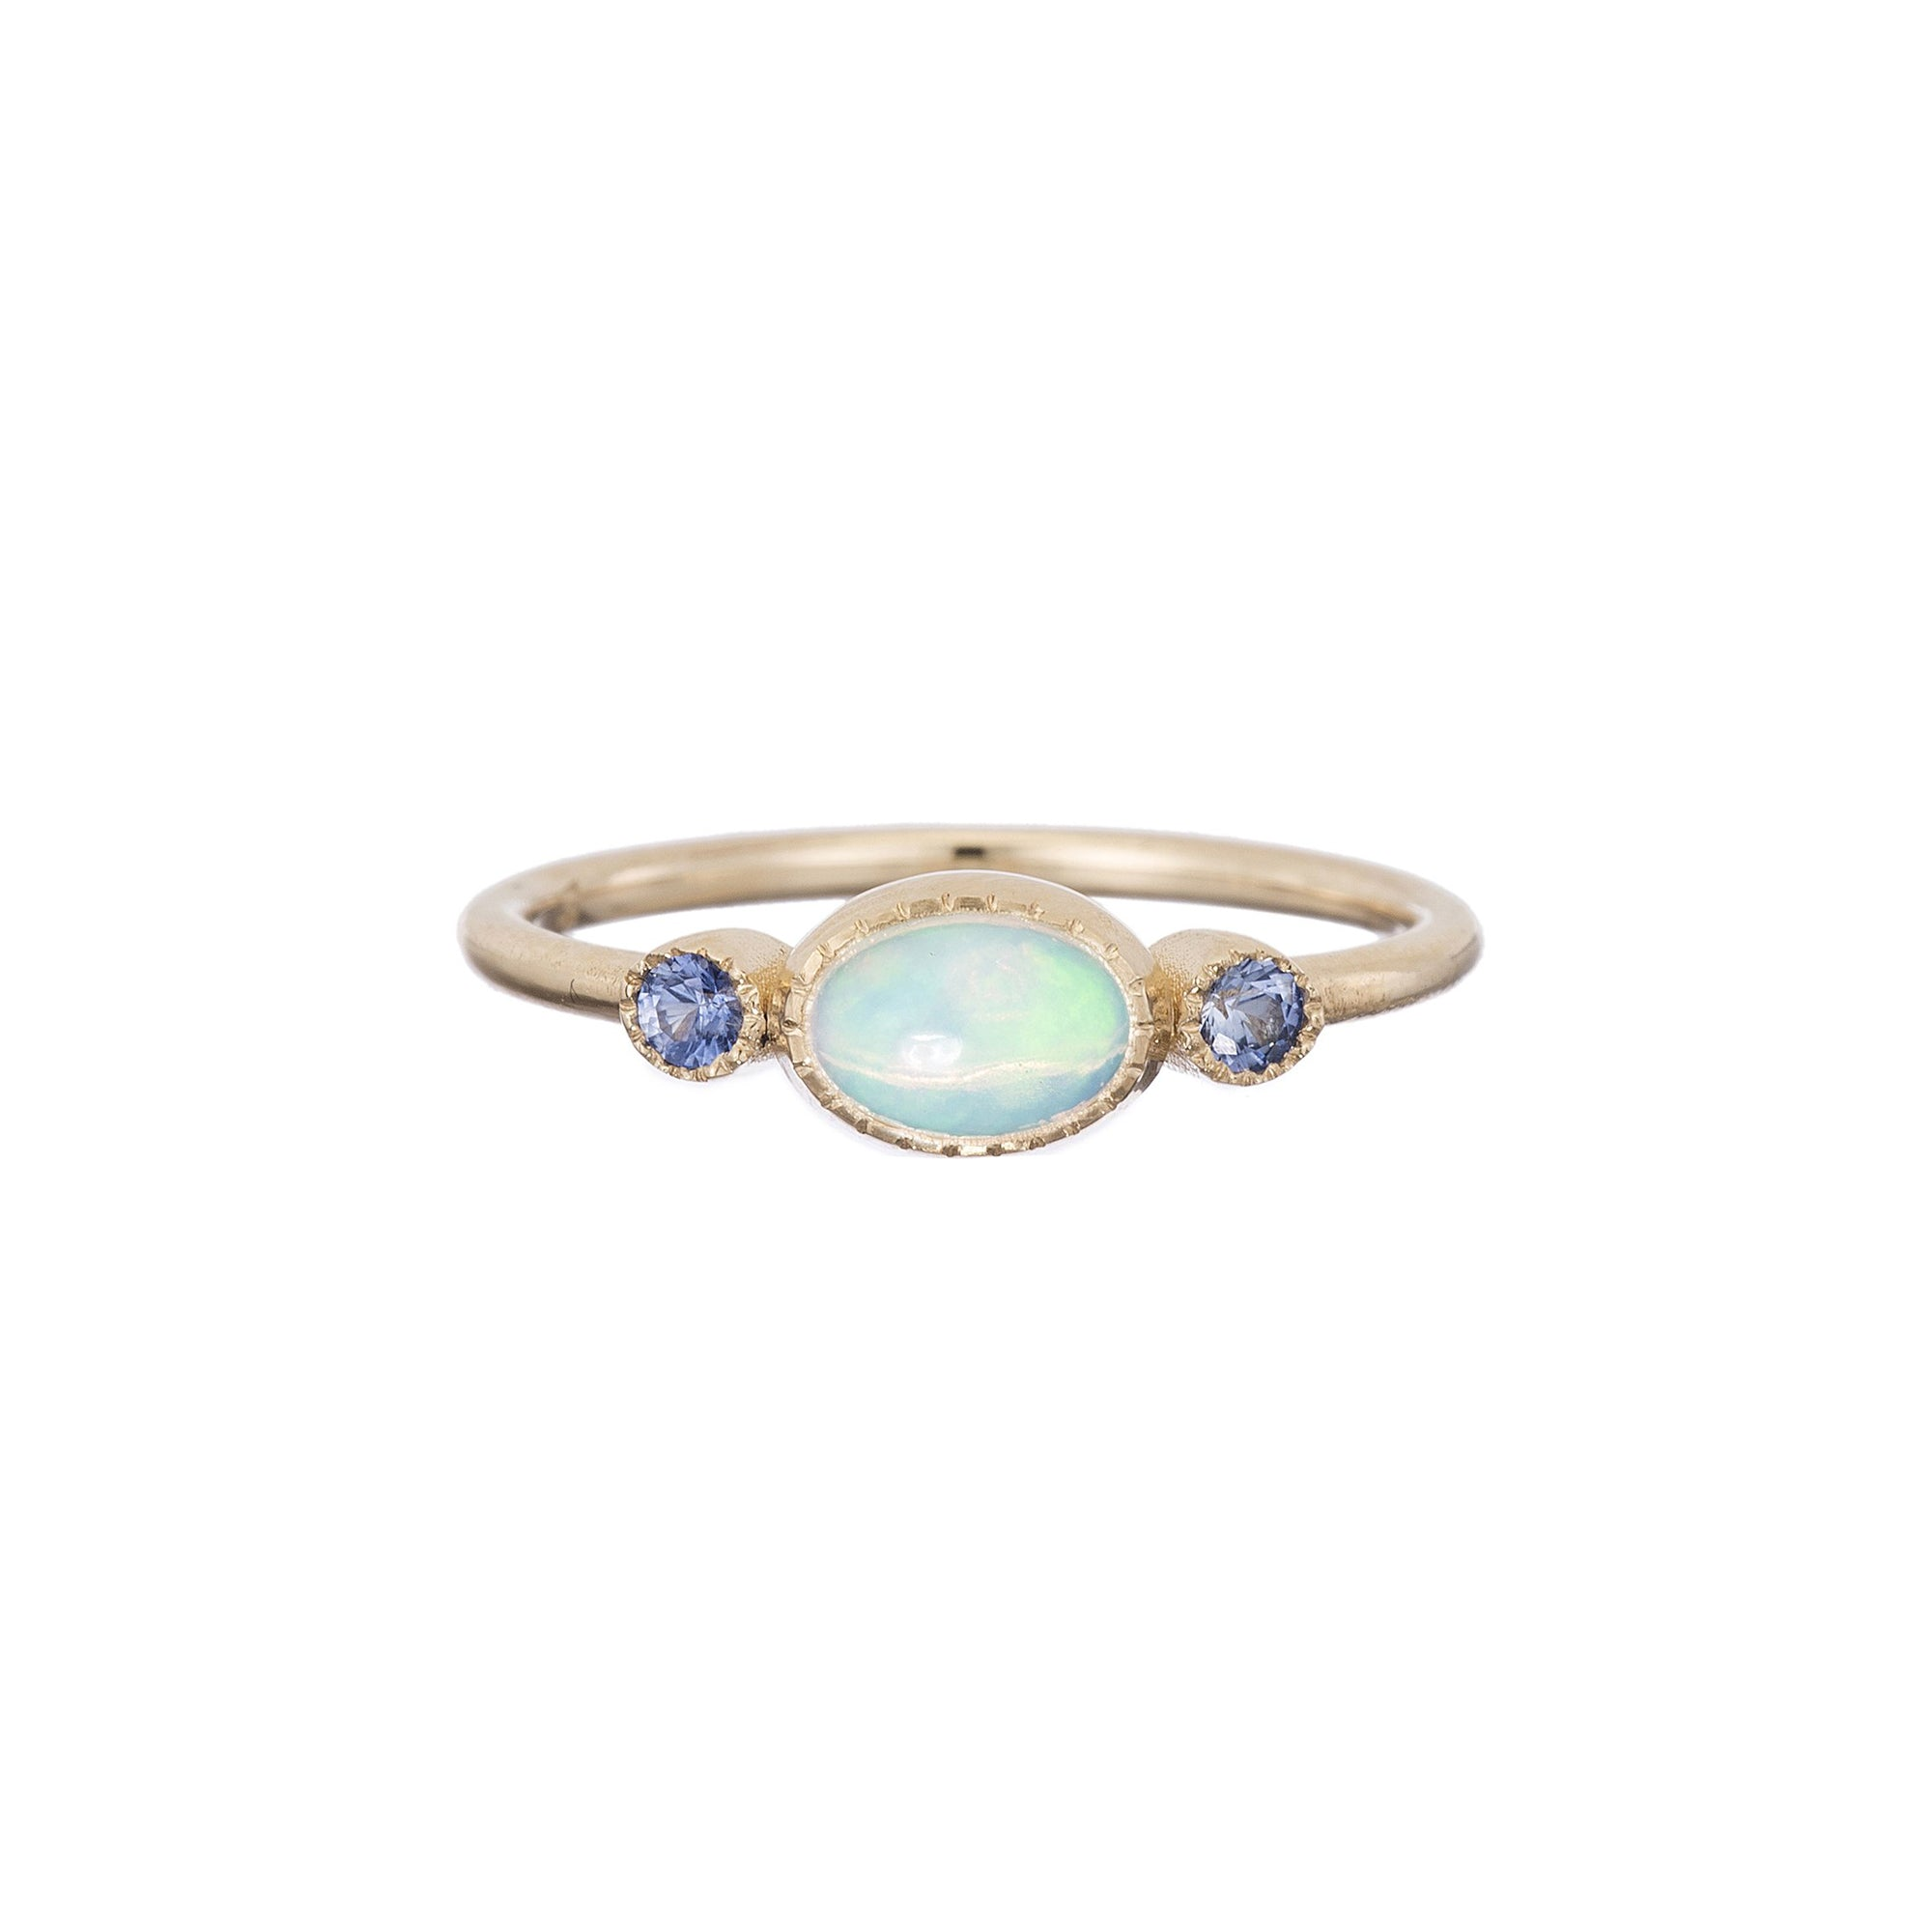 Jennie Kwon Sapphire Opal Reese Ring - Rings - Broken English Jewelry